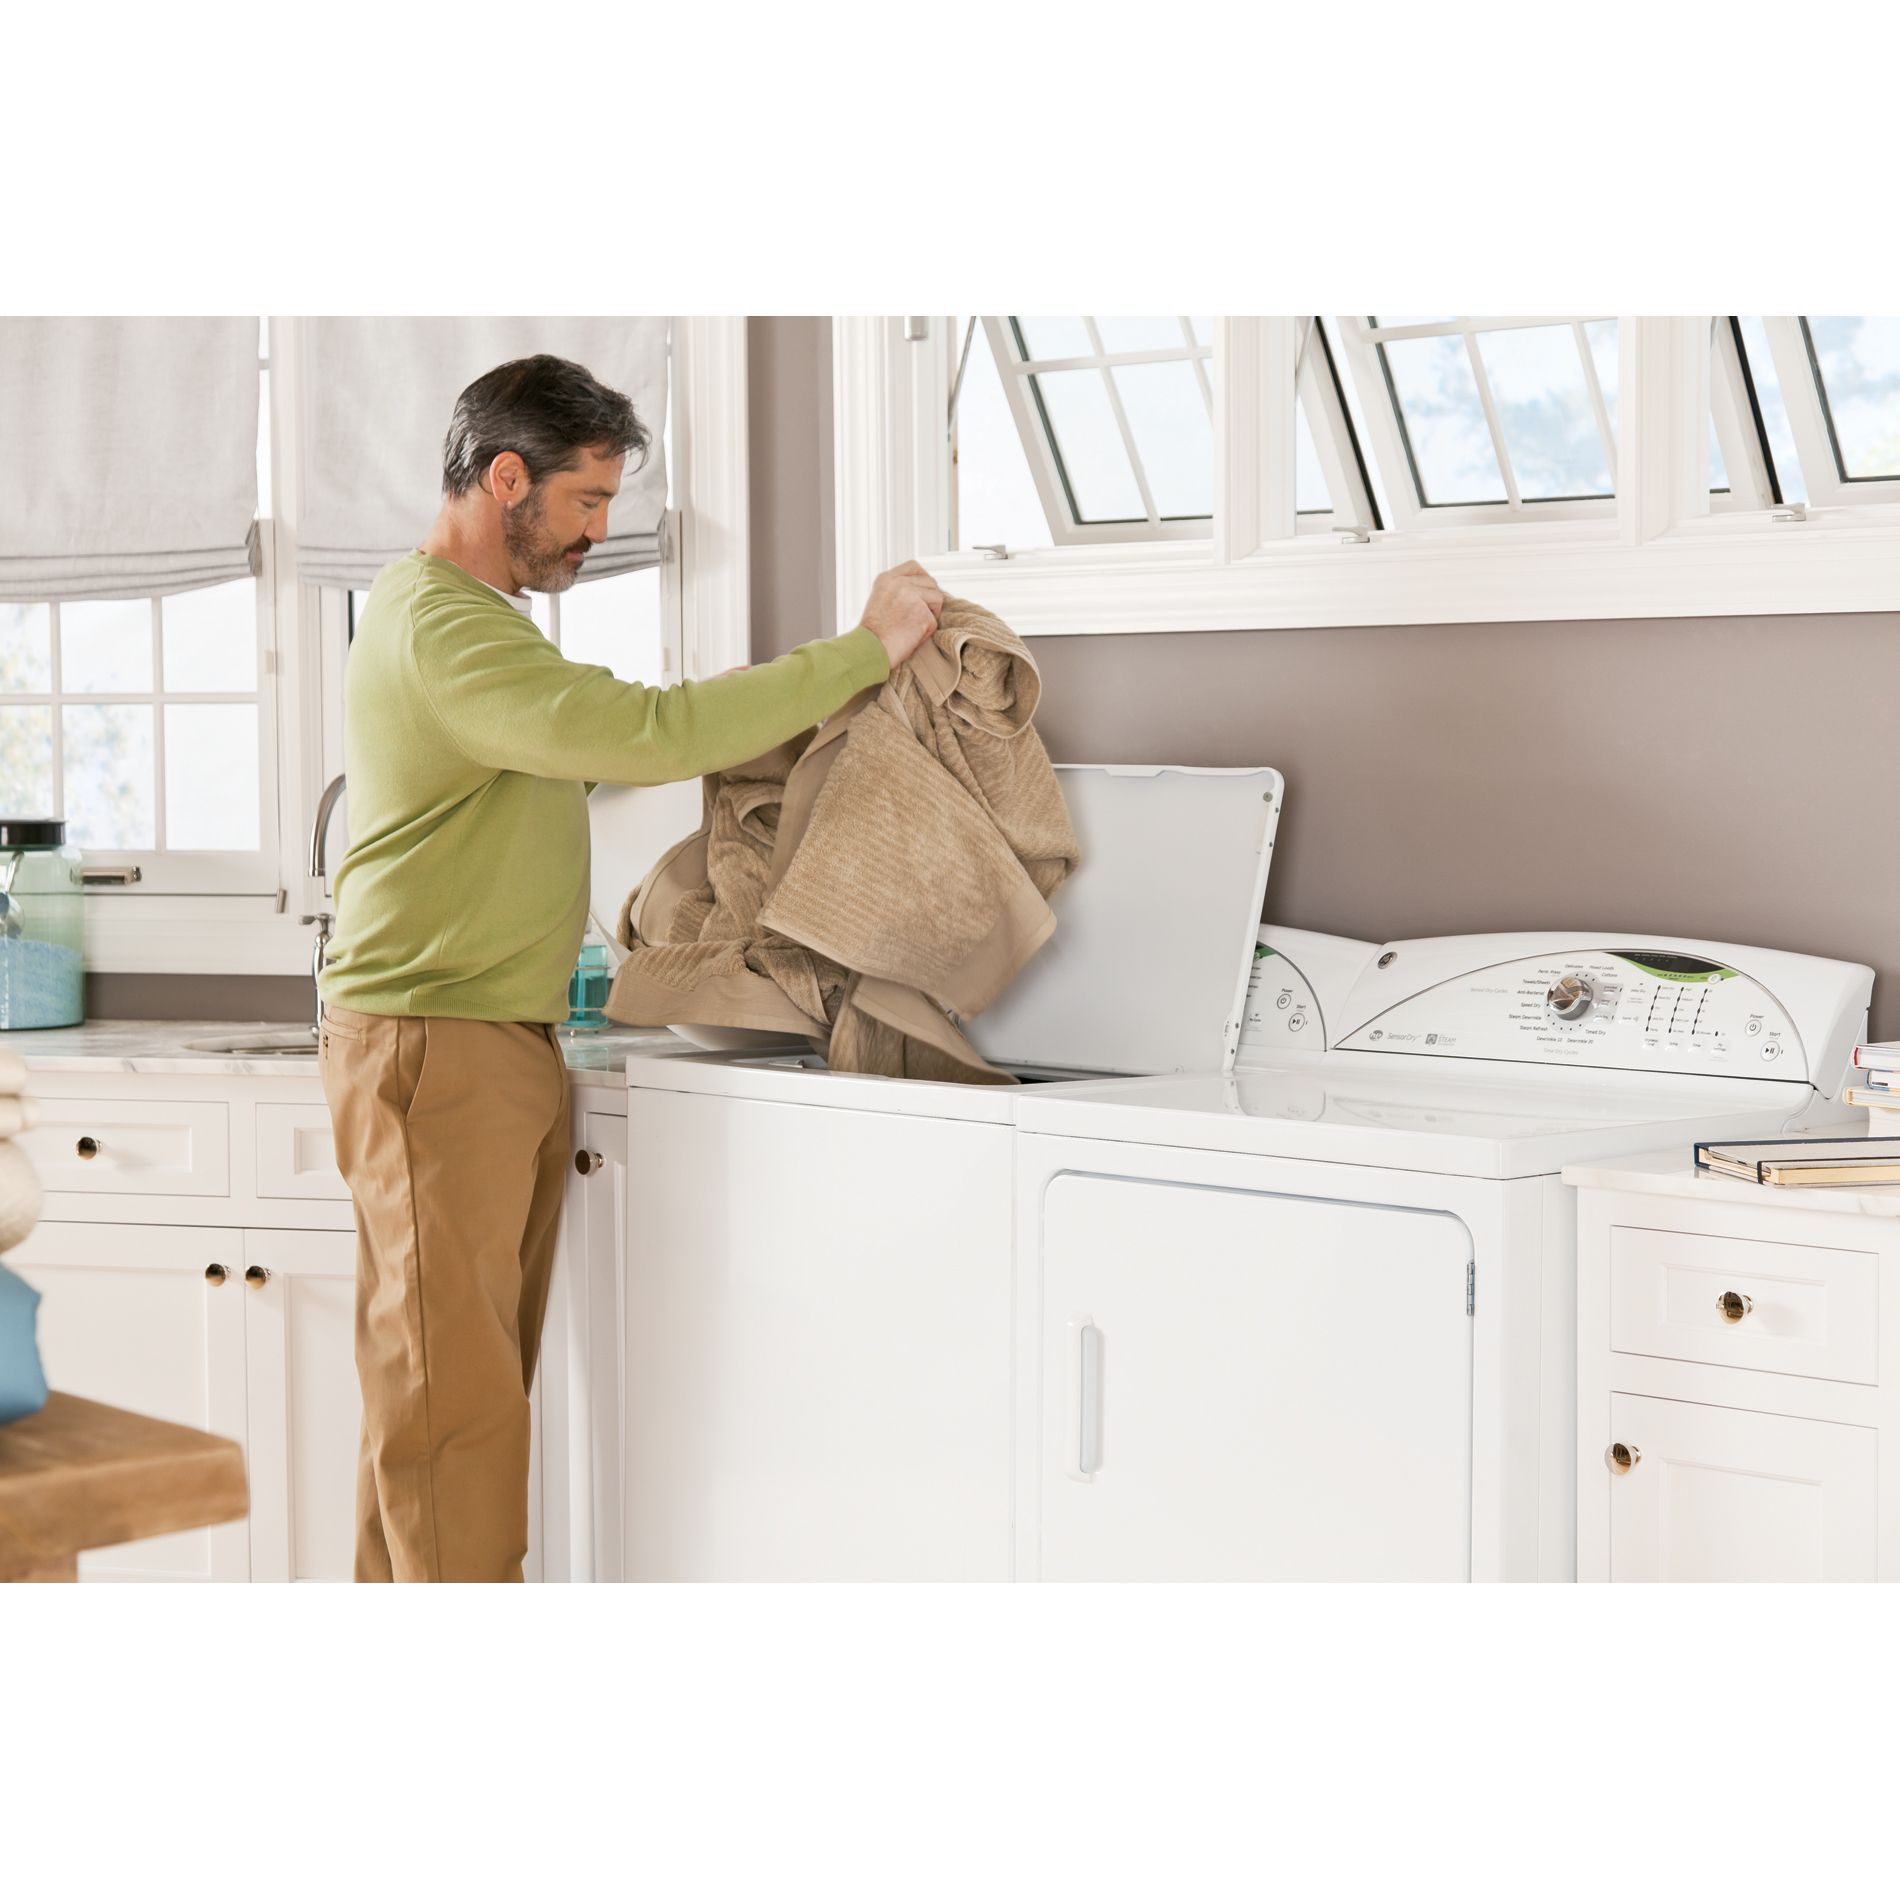 GE 4.0 cu. ft. High-Efficiency Top Load Washer - White